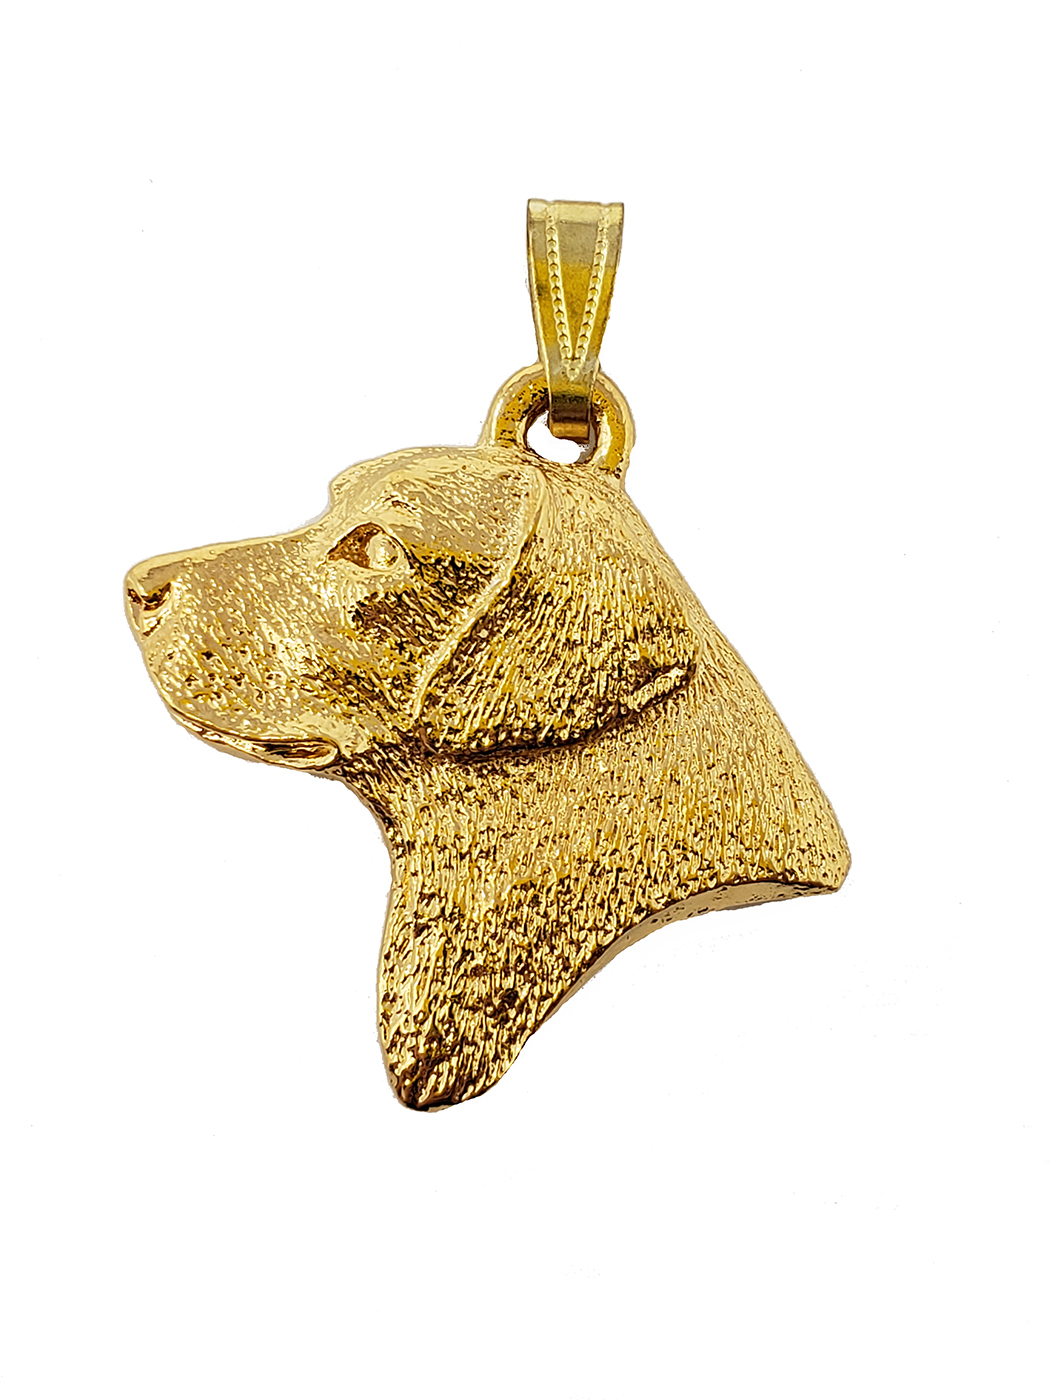 Labrador Retriever 24K Gold Plated Pendant Head